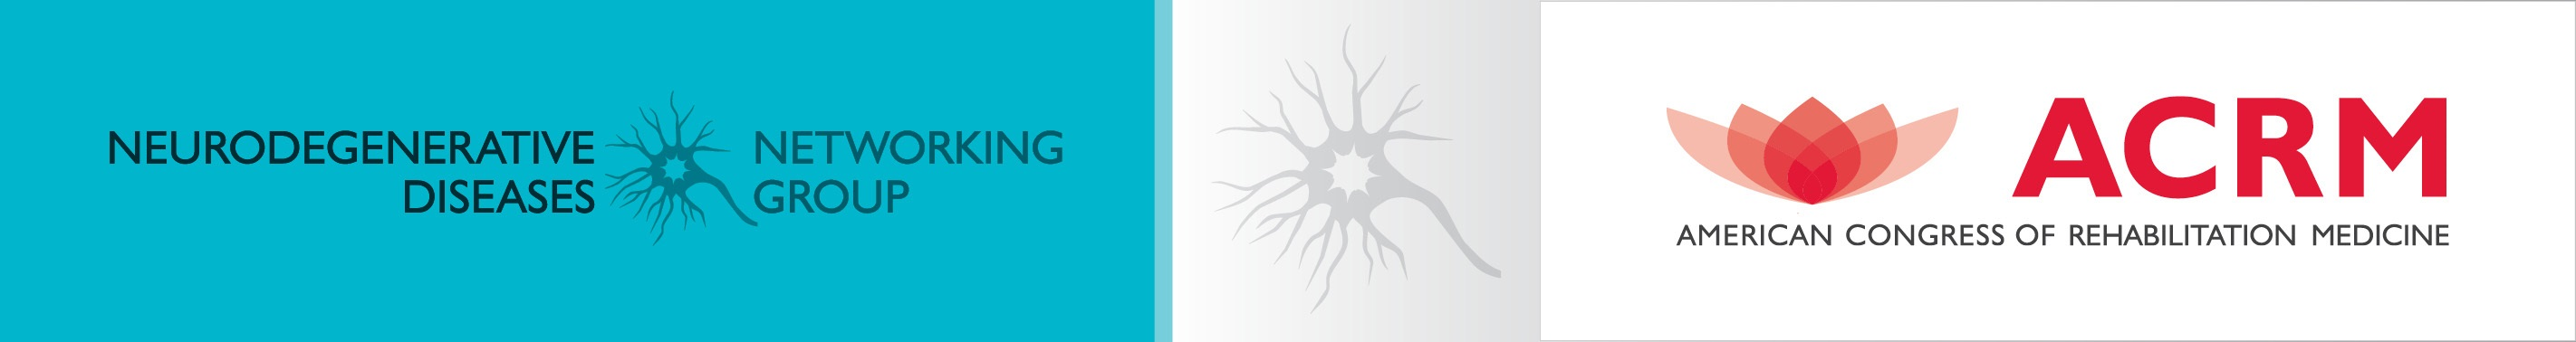 ACRM Neurodegenerative Diseases Networking Group banner